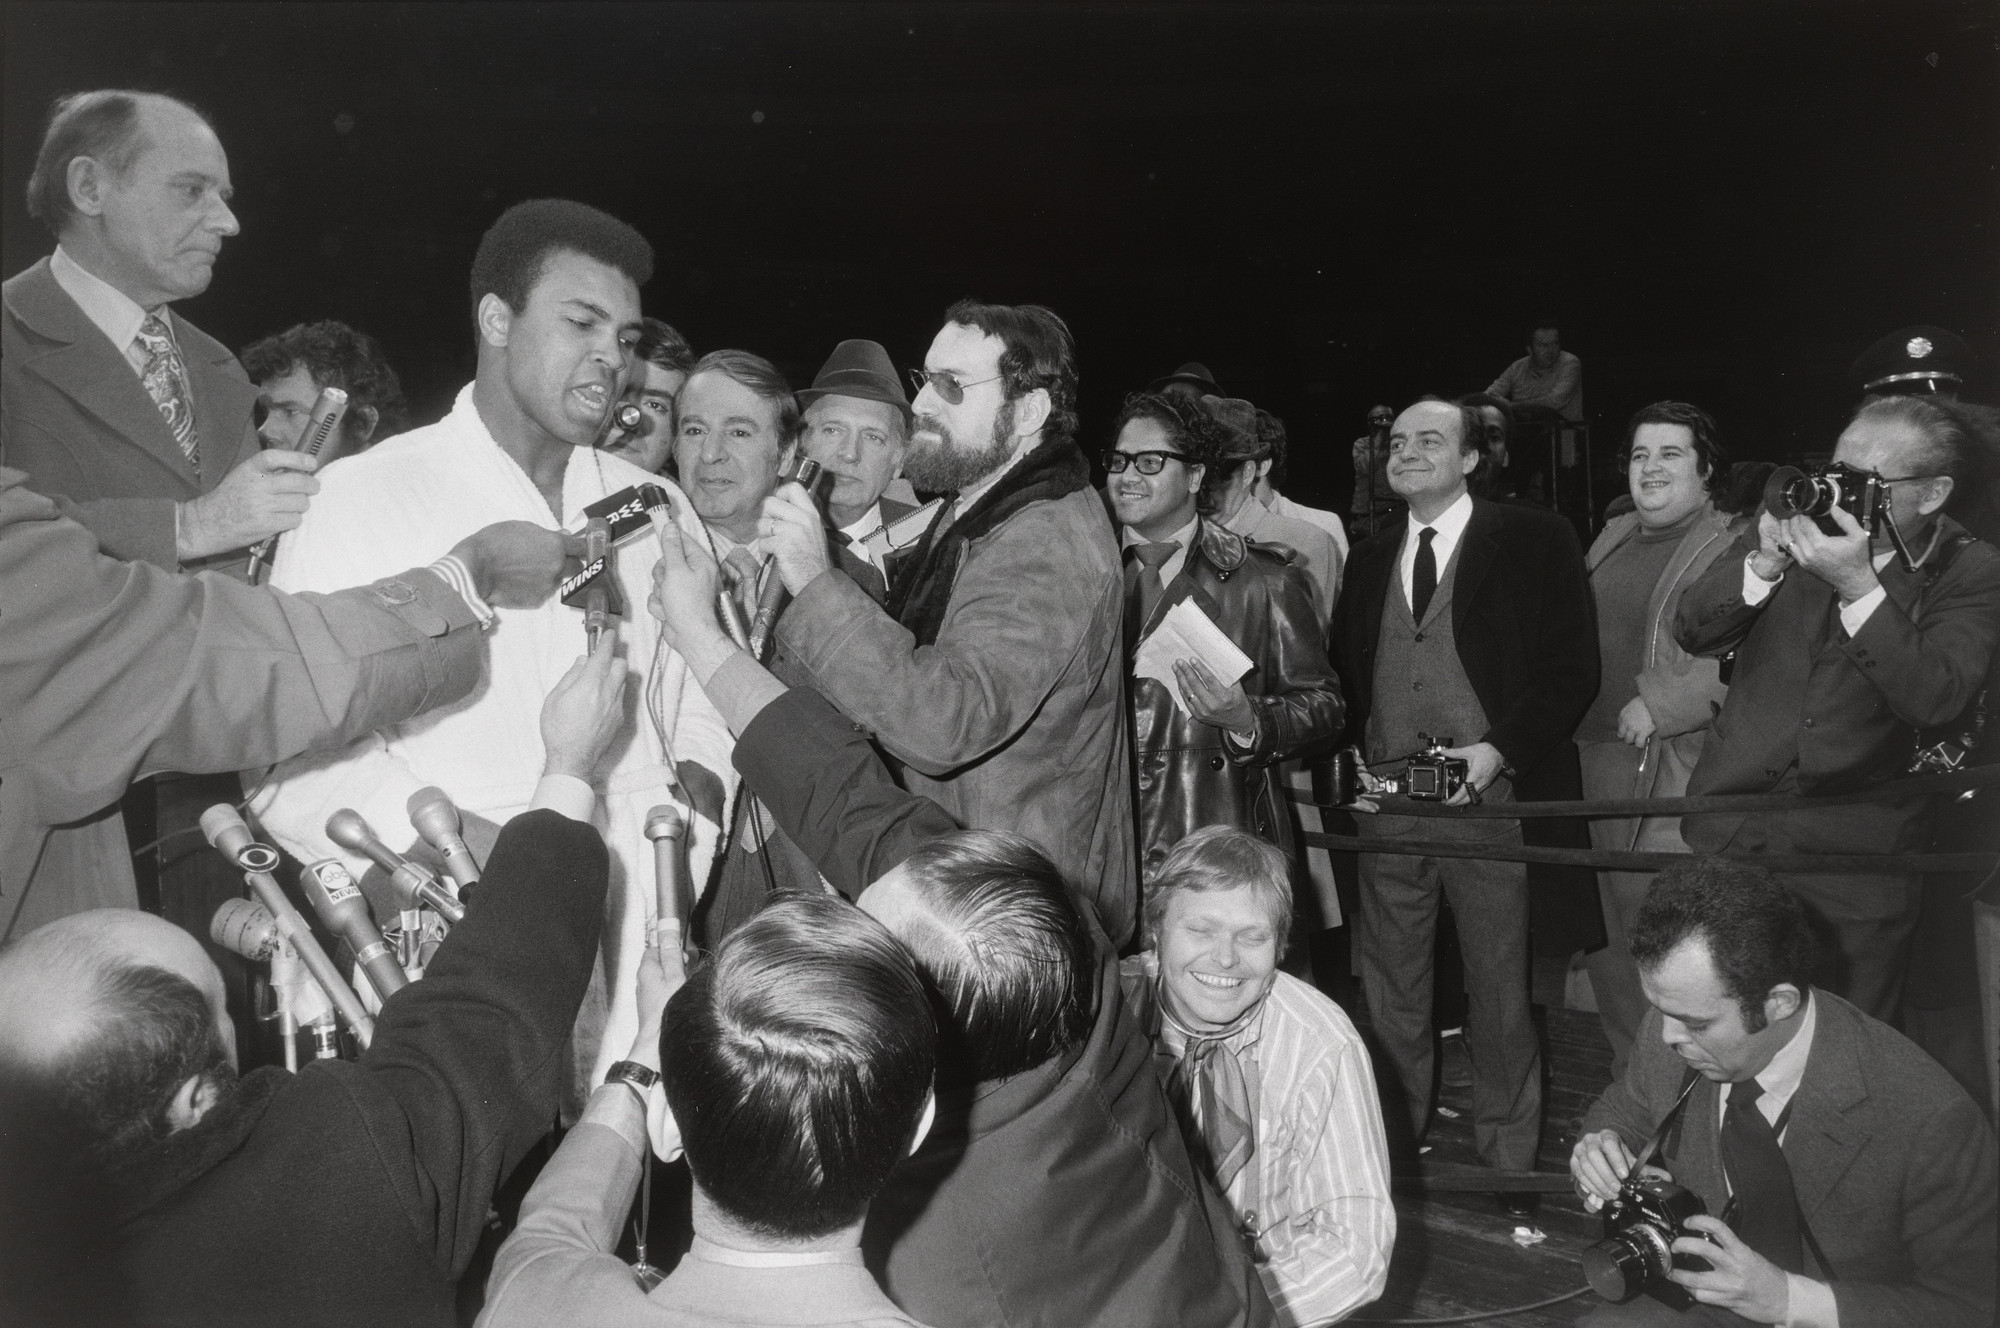 Garry Winogrand. Muhammad Ali - Oscar Bonavena Press Conference, New York City. 1970